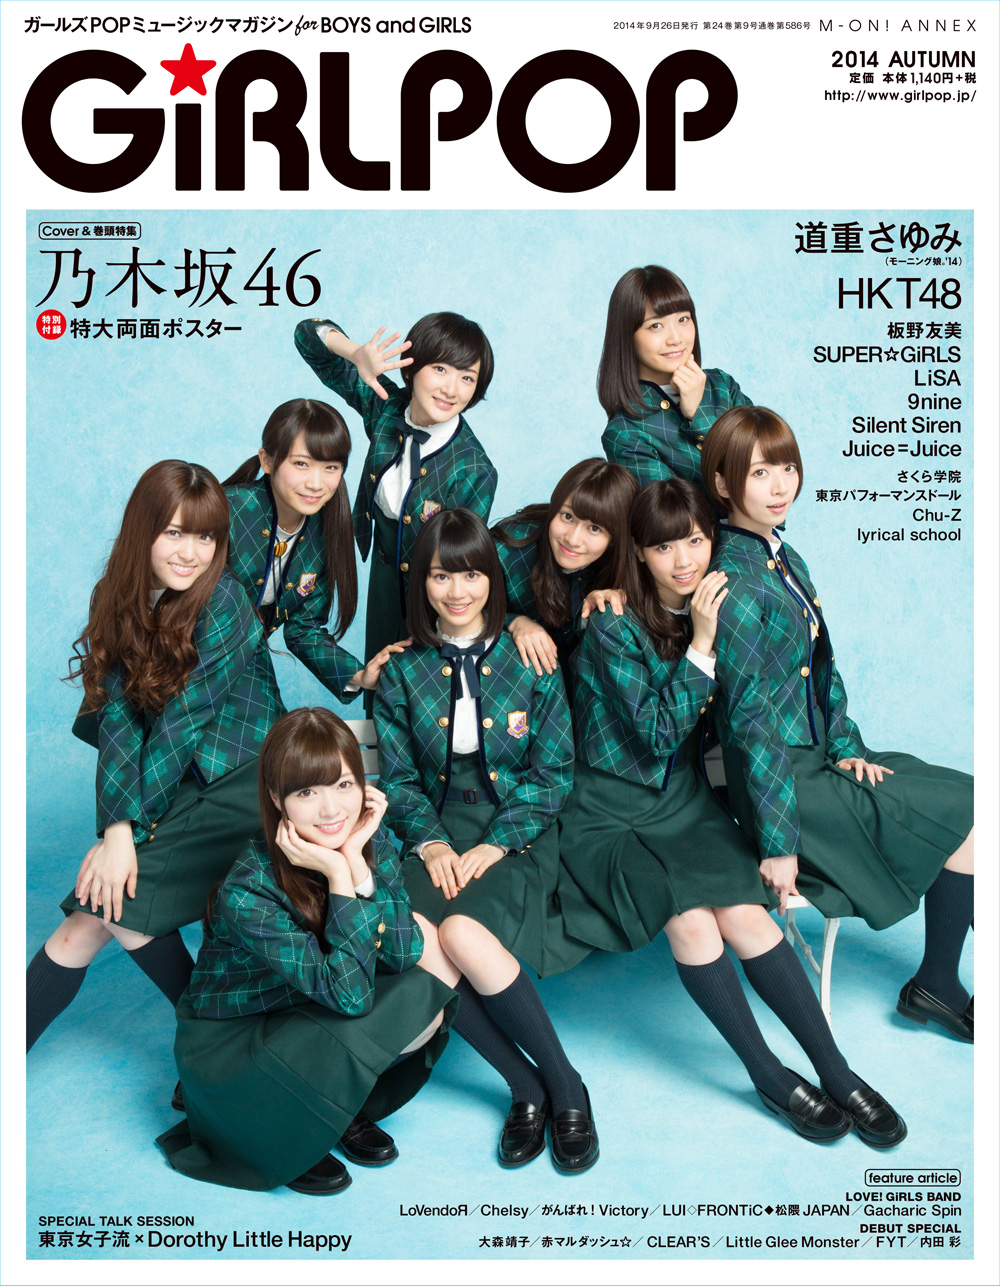 GiRLPOP 2014 AUTUMN